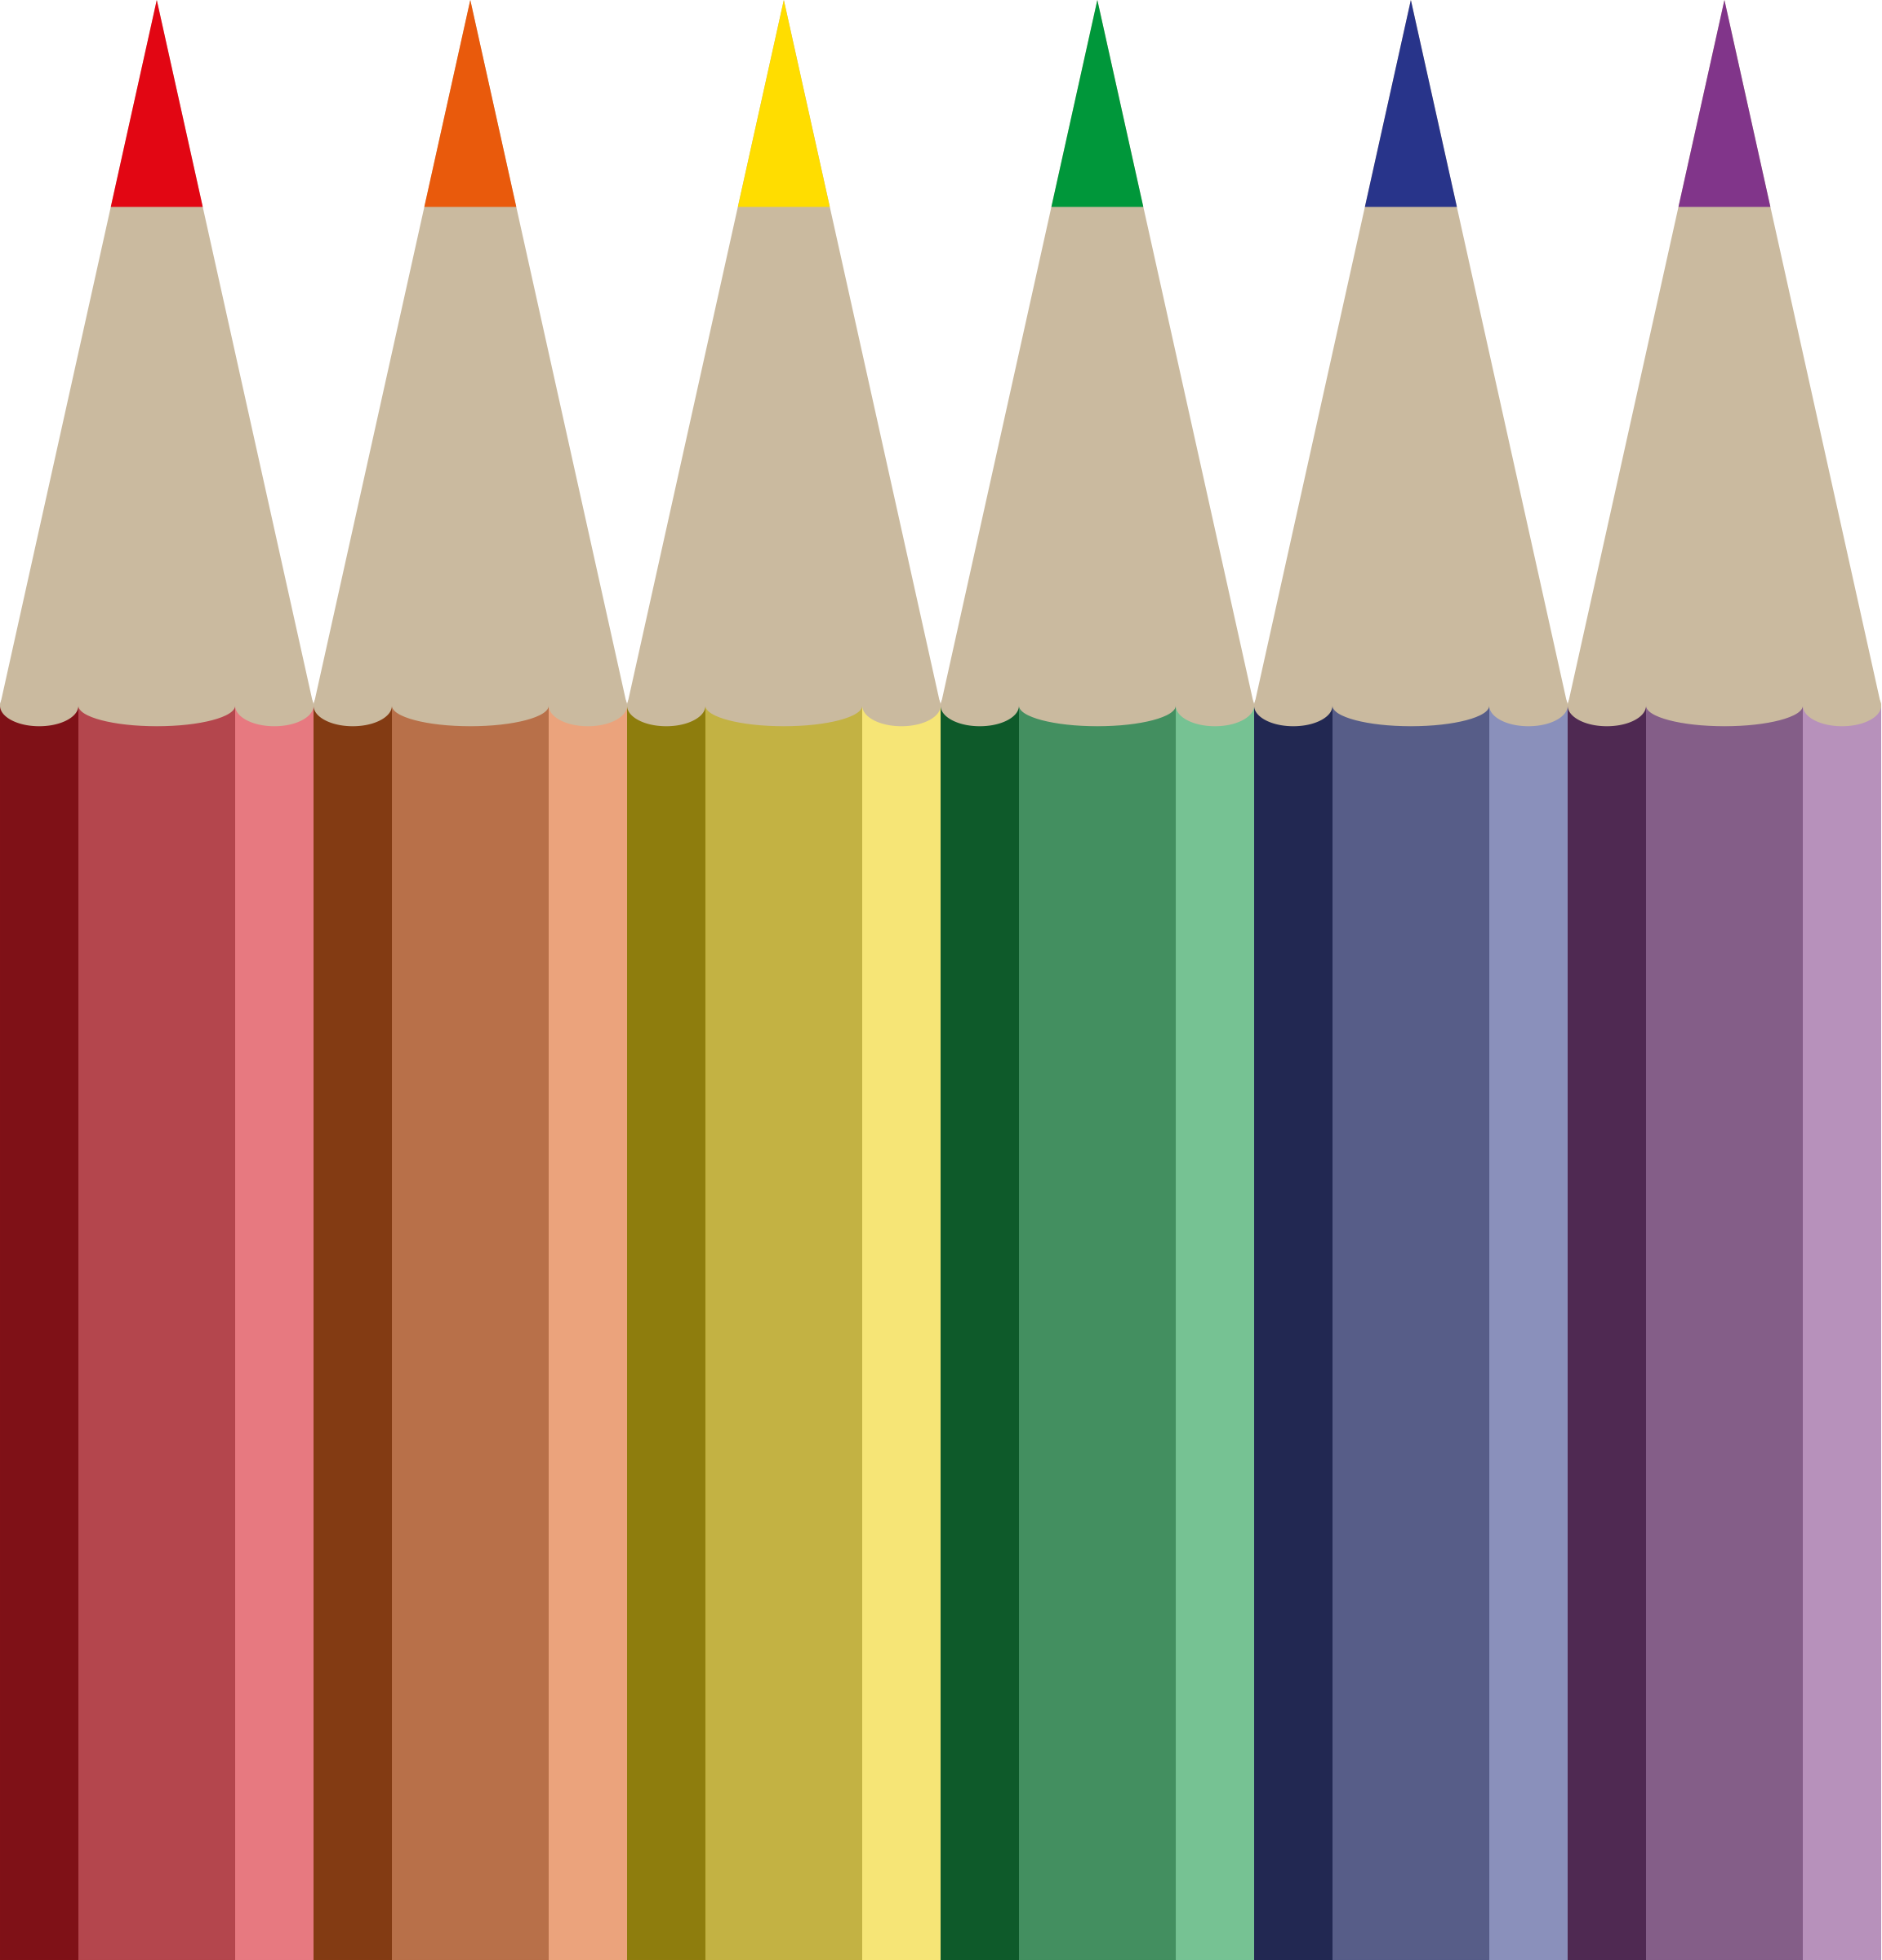 Crayons transparent row. Collection of free crayoned